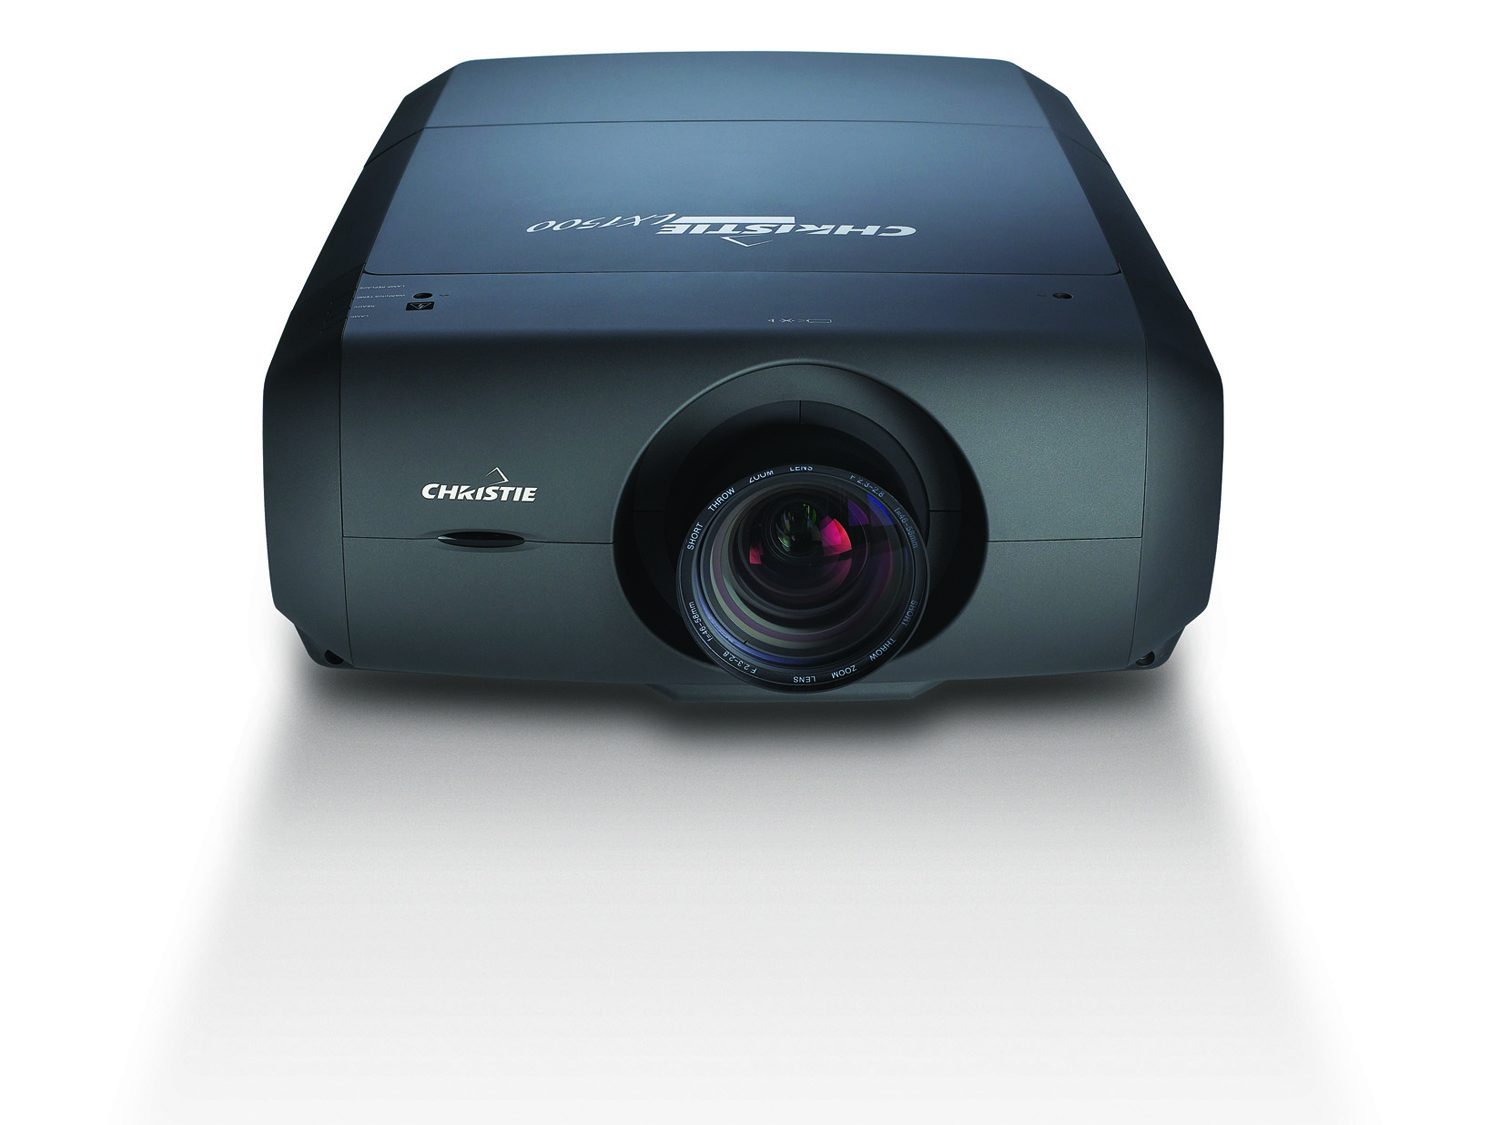 /globalassets/.catalog/products/images/christie-lx1500/gallery/christie-lx1500-lcd-projector-highfrontpr.jpg